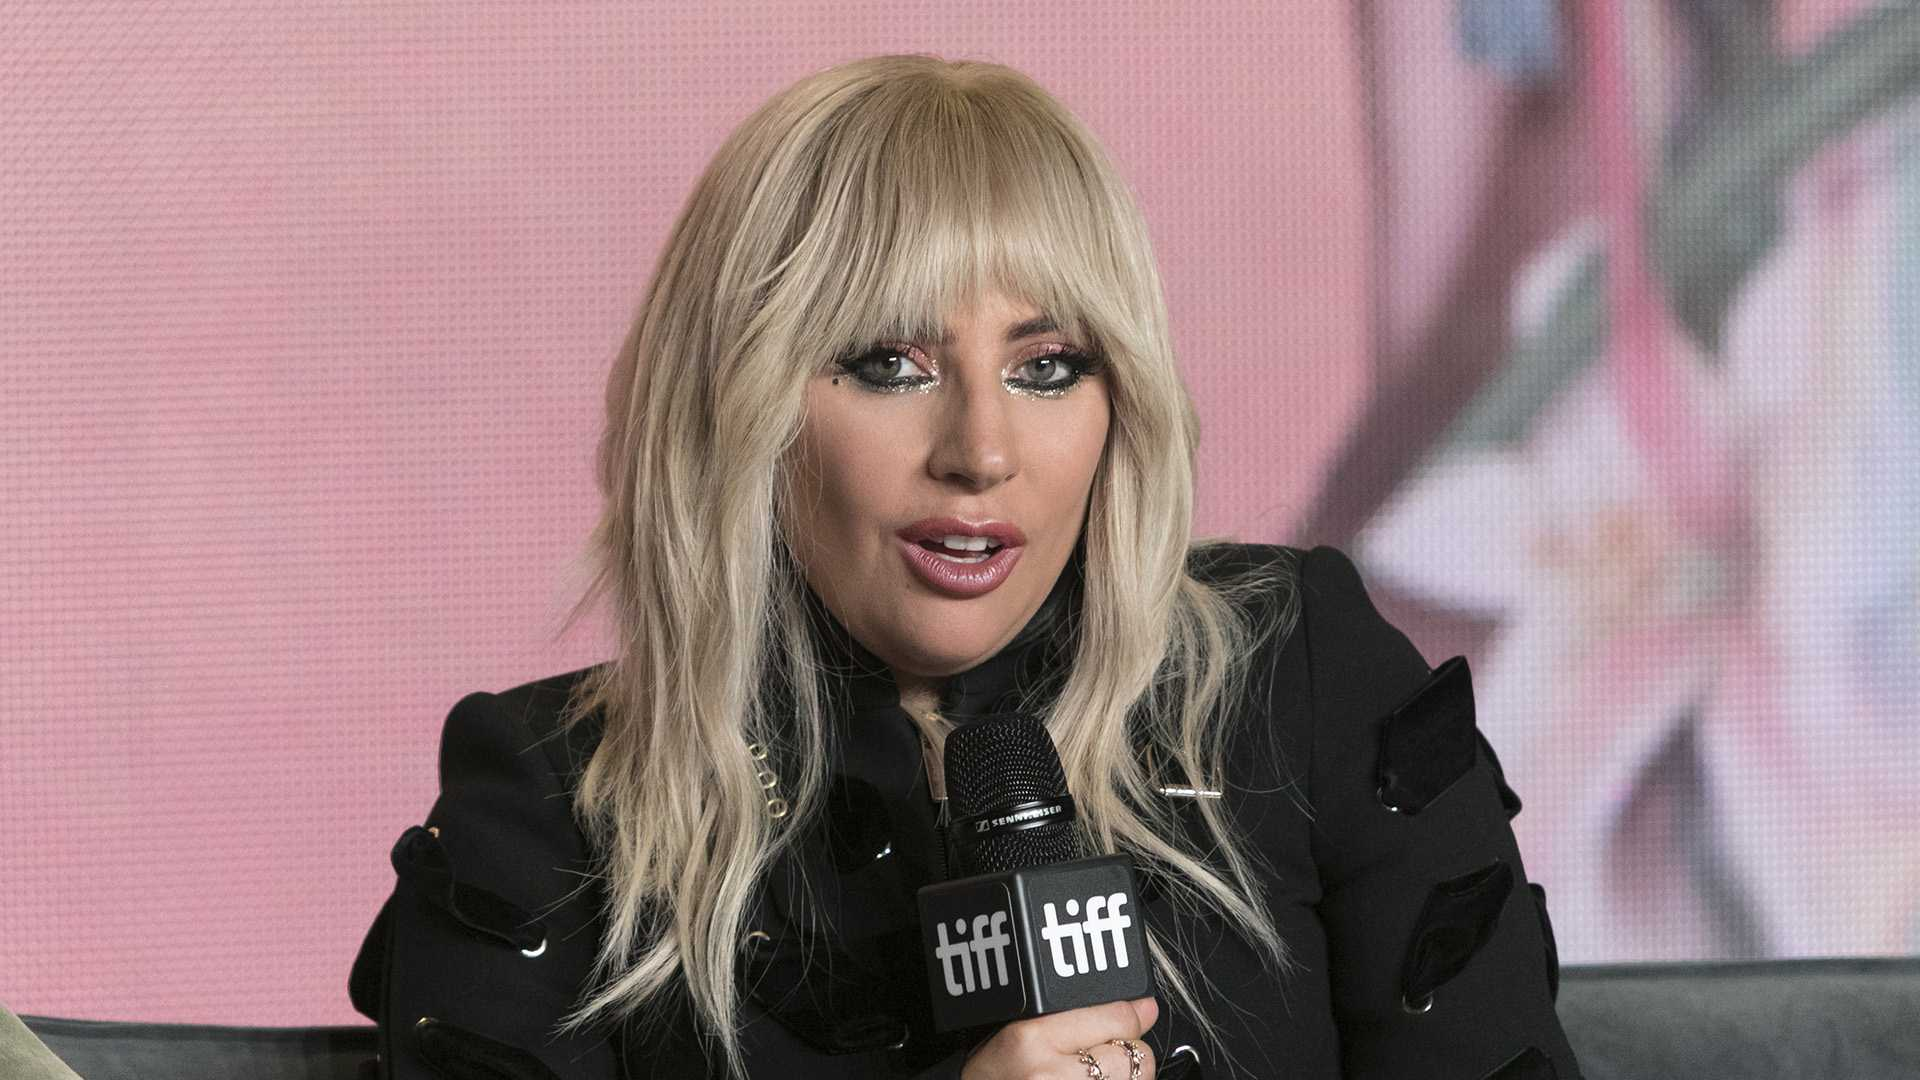 Lady Gaga attends a news conference during the Toronto International Film Festival, at Bell Lightbox in Toronto, Canada, on Sept. 8, 2017. (Hubert Boesl/DPA/Abaca Press/TNS)